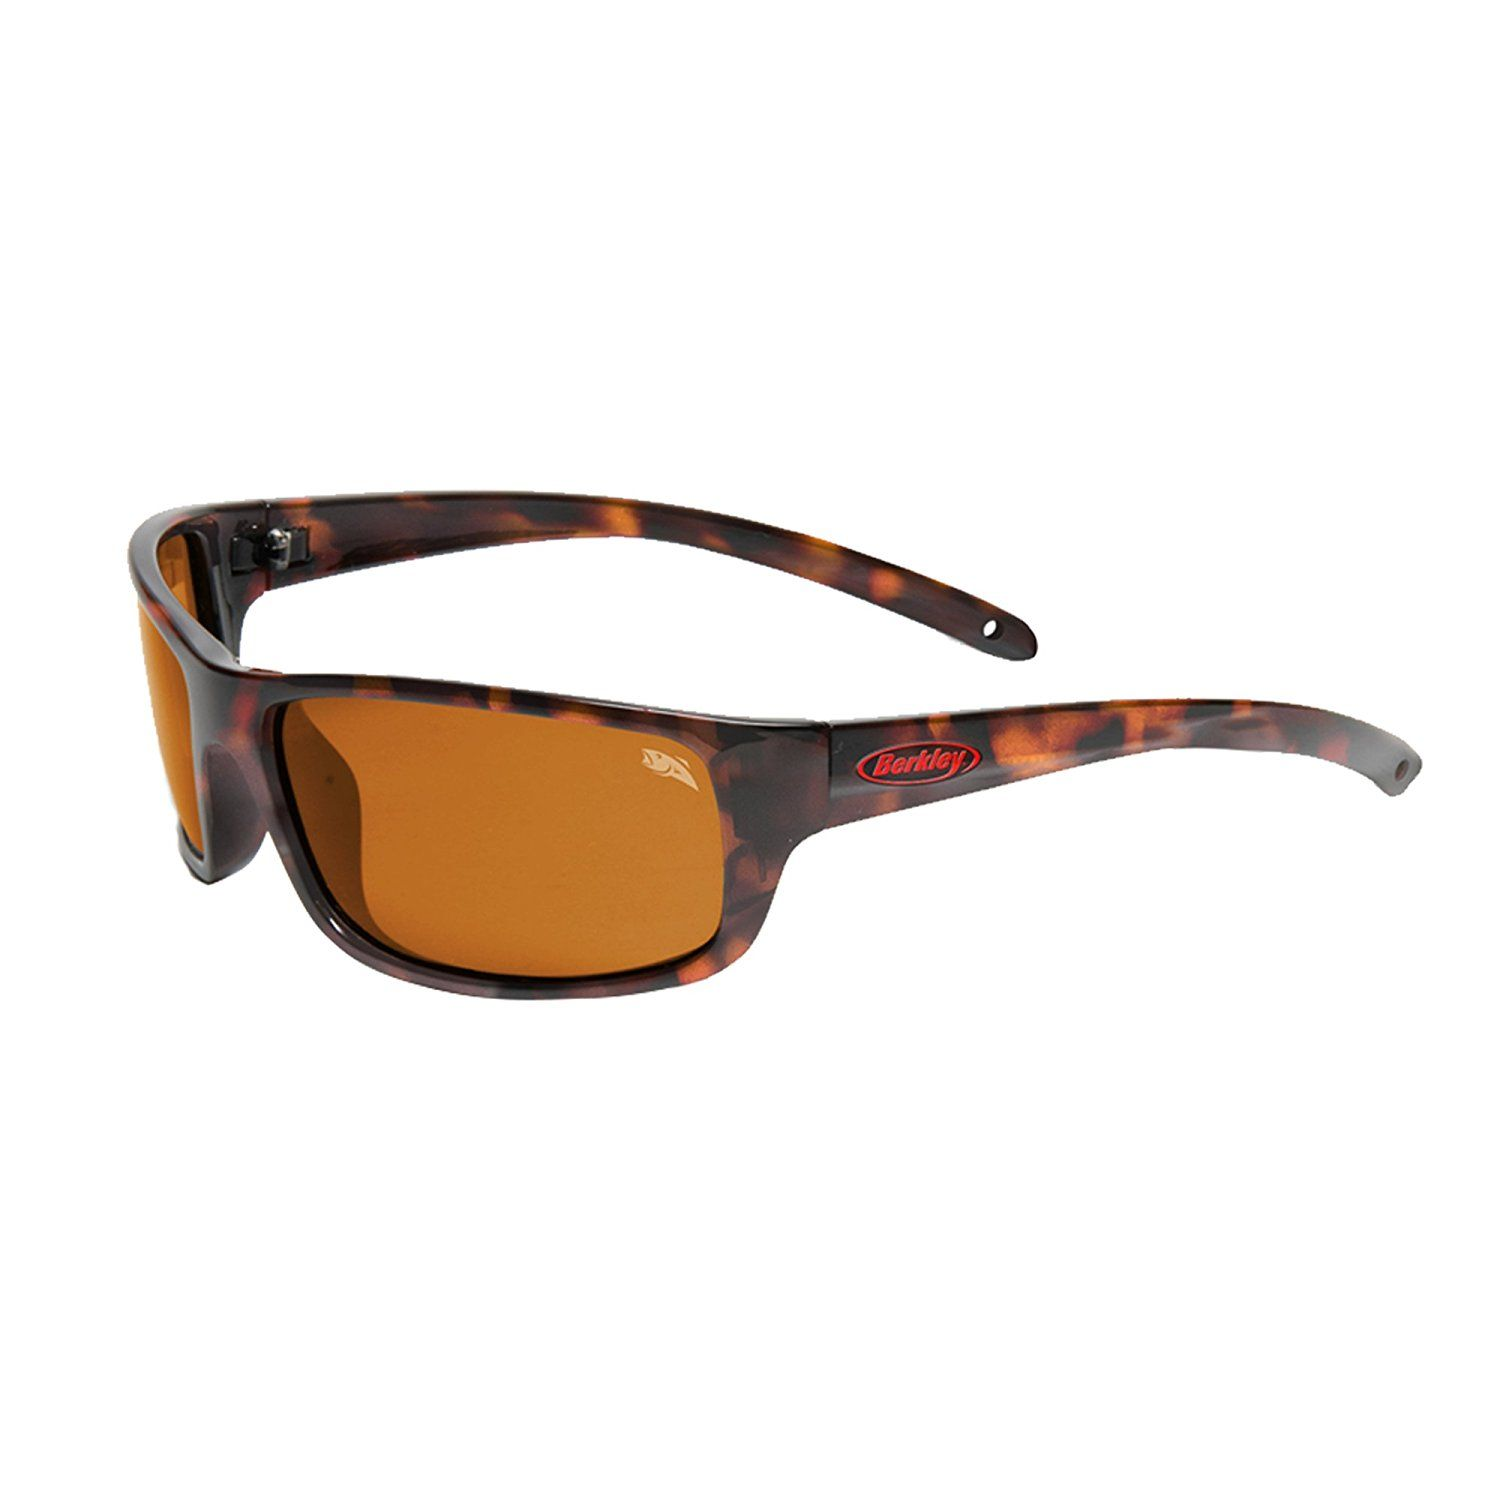 04dbbc6611 Berkley Dodge Sunglasses   Visit the image link more details ...